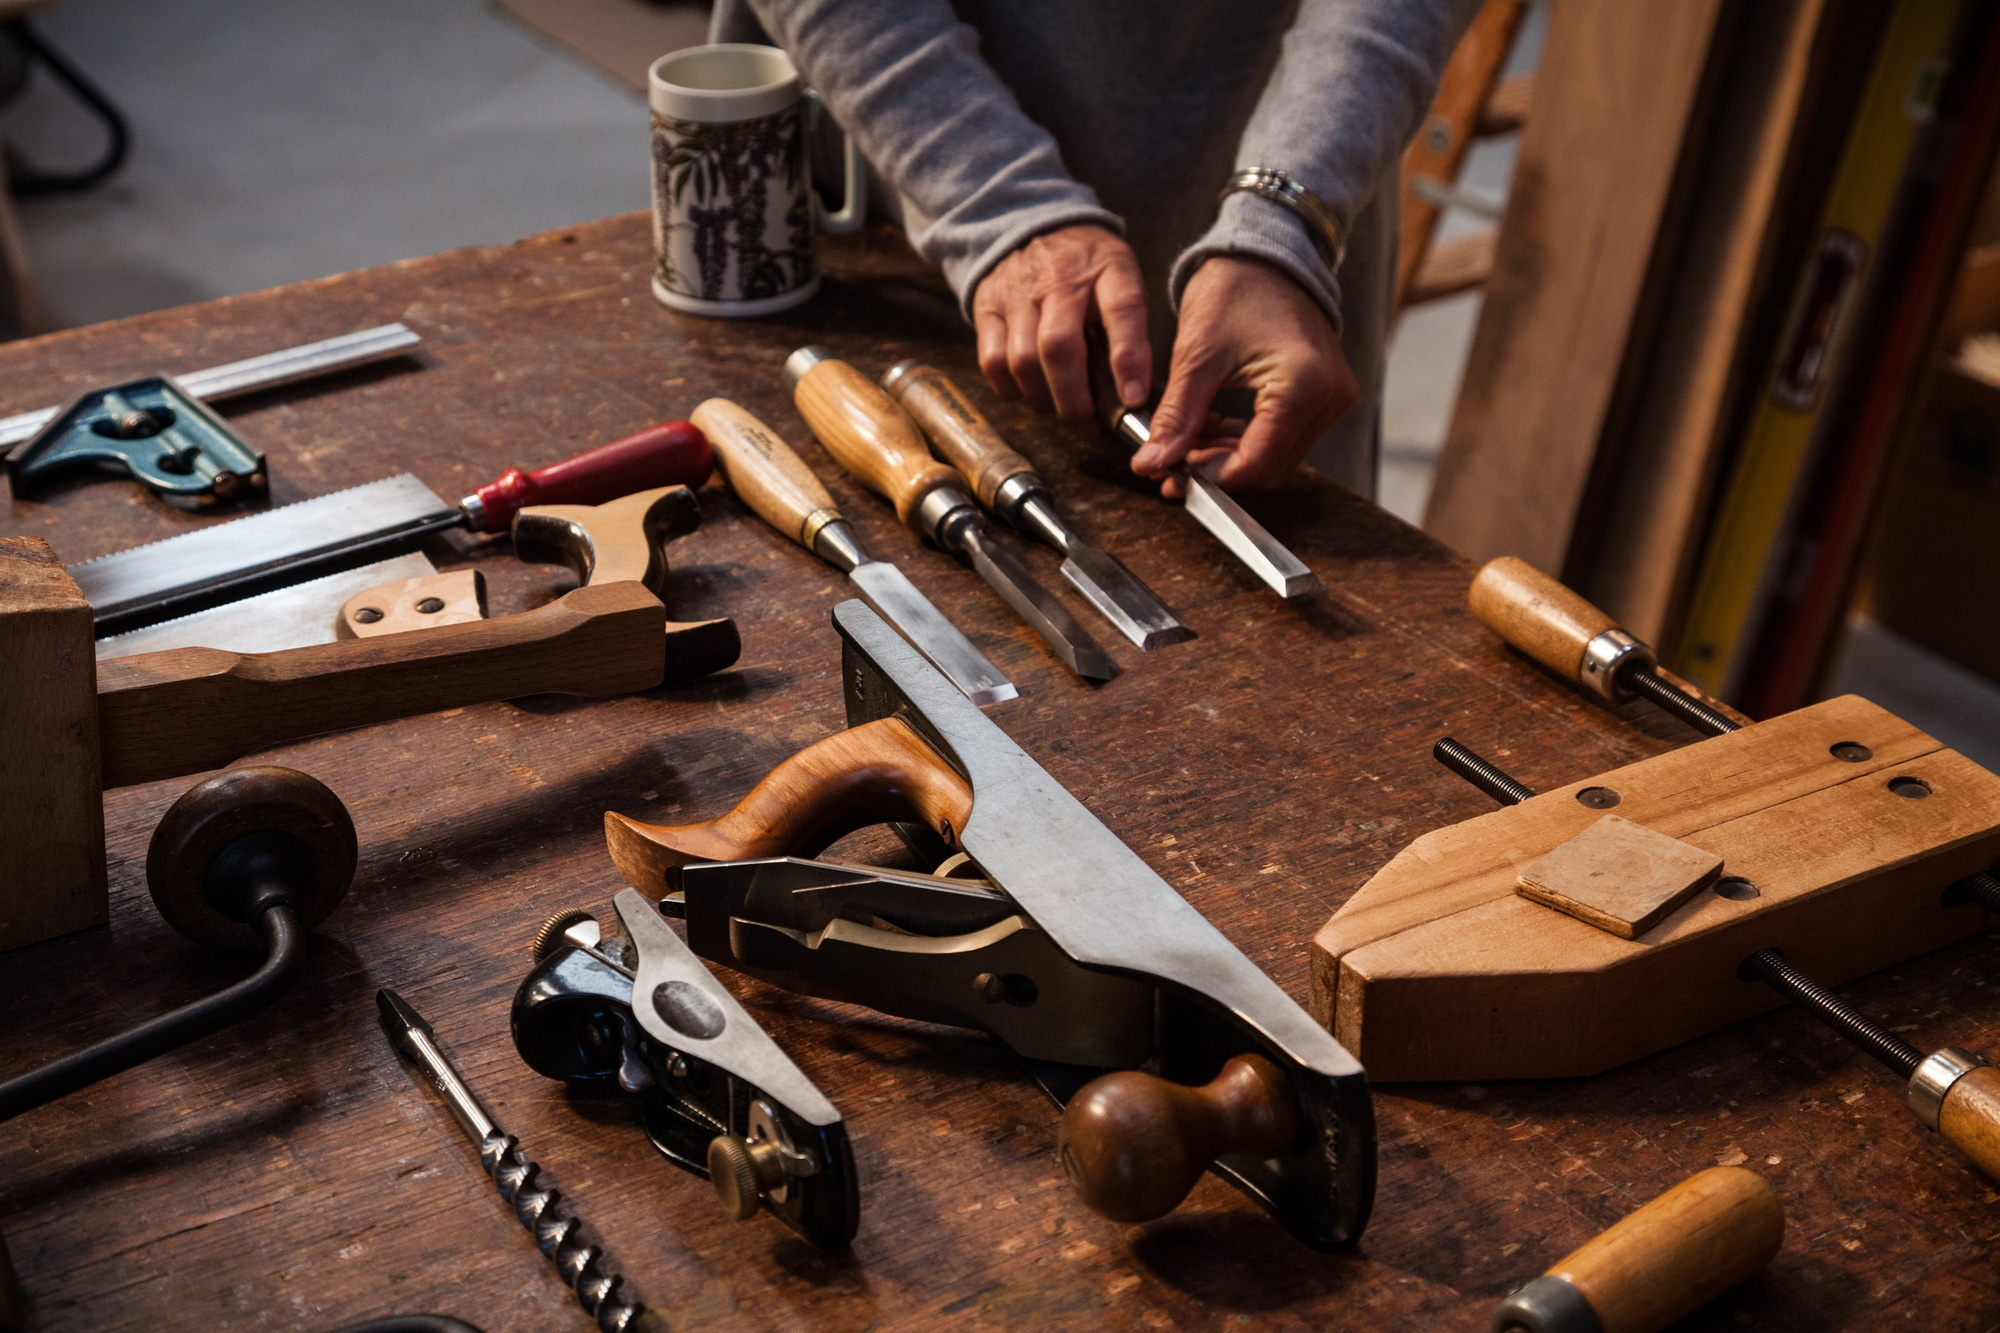 Basic Woodworking Tools You Need for Your Home DIY Projects - Cloud Media News